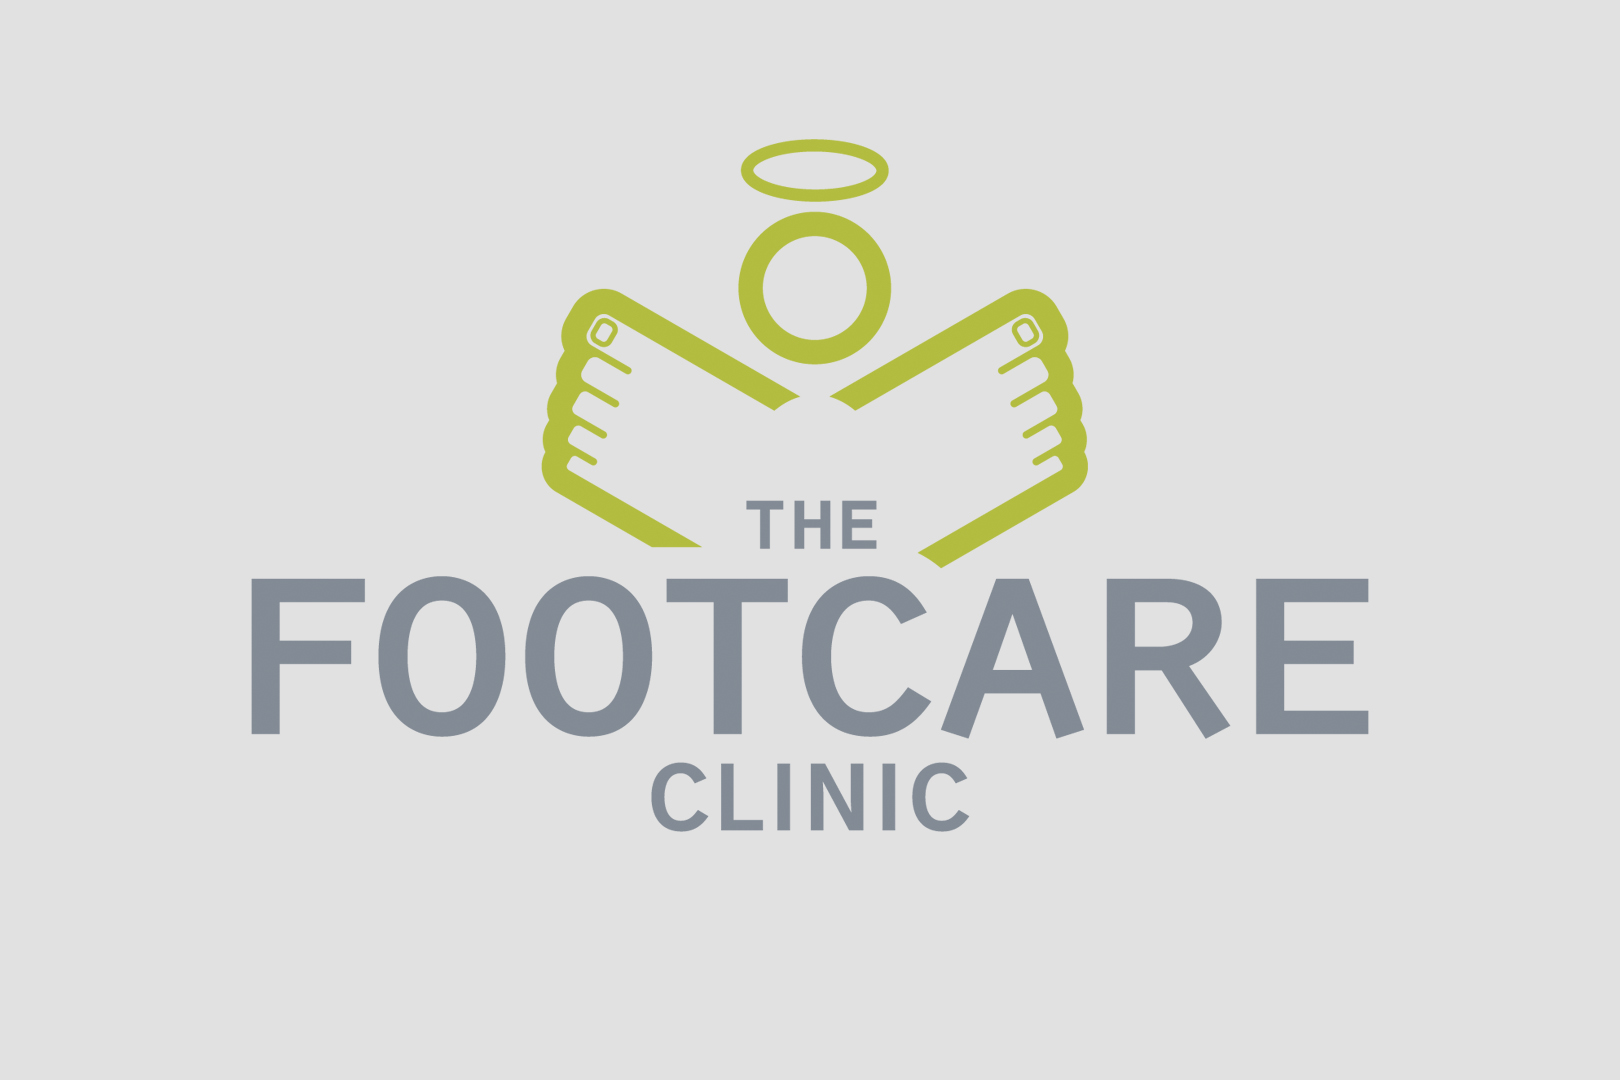 The Footcare Clinic